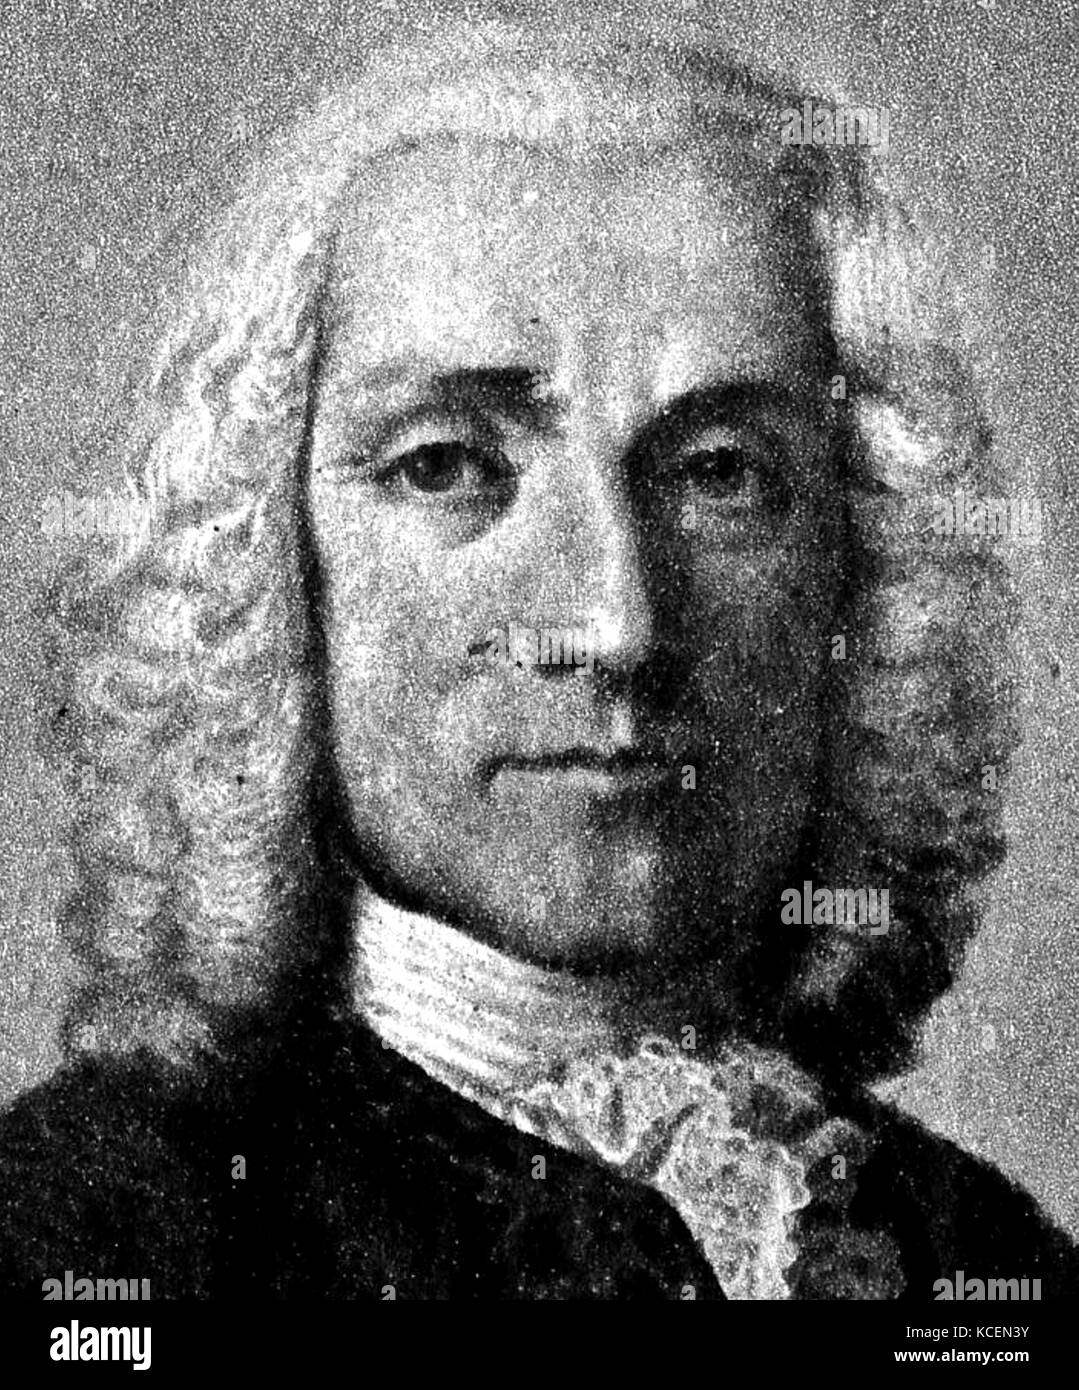 Alessandro Scarlatti (1660–1725), Baroque composer known for operas and chamber cantatas - Stock Image